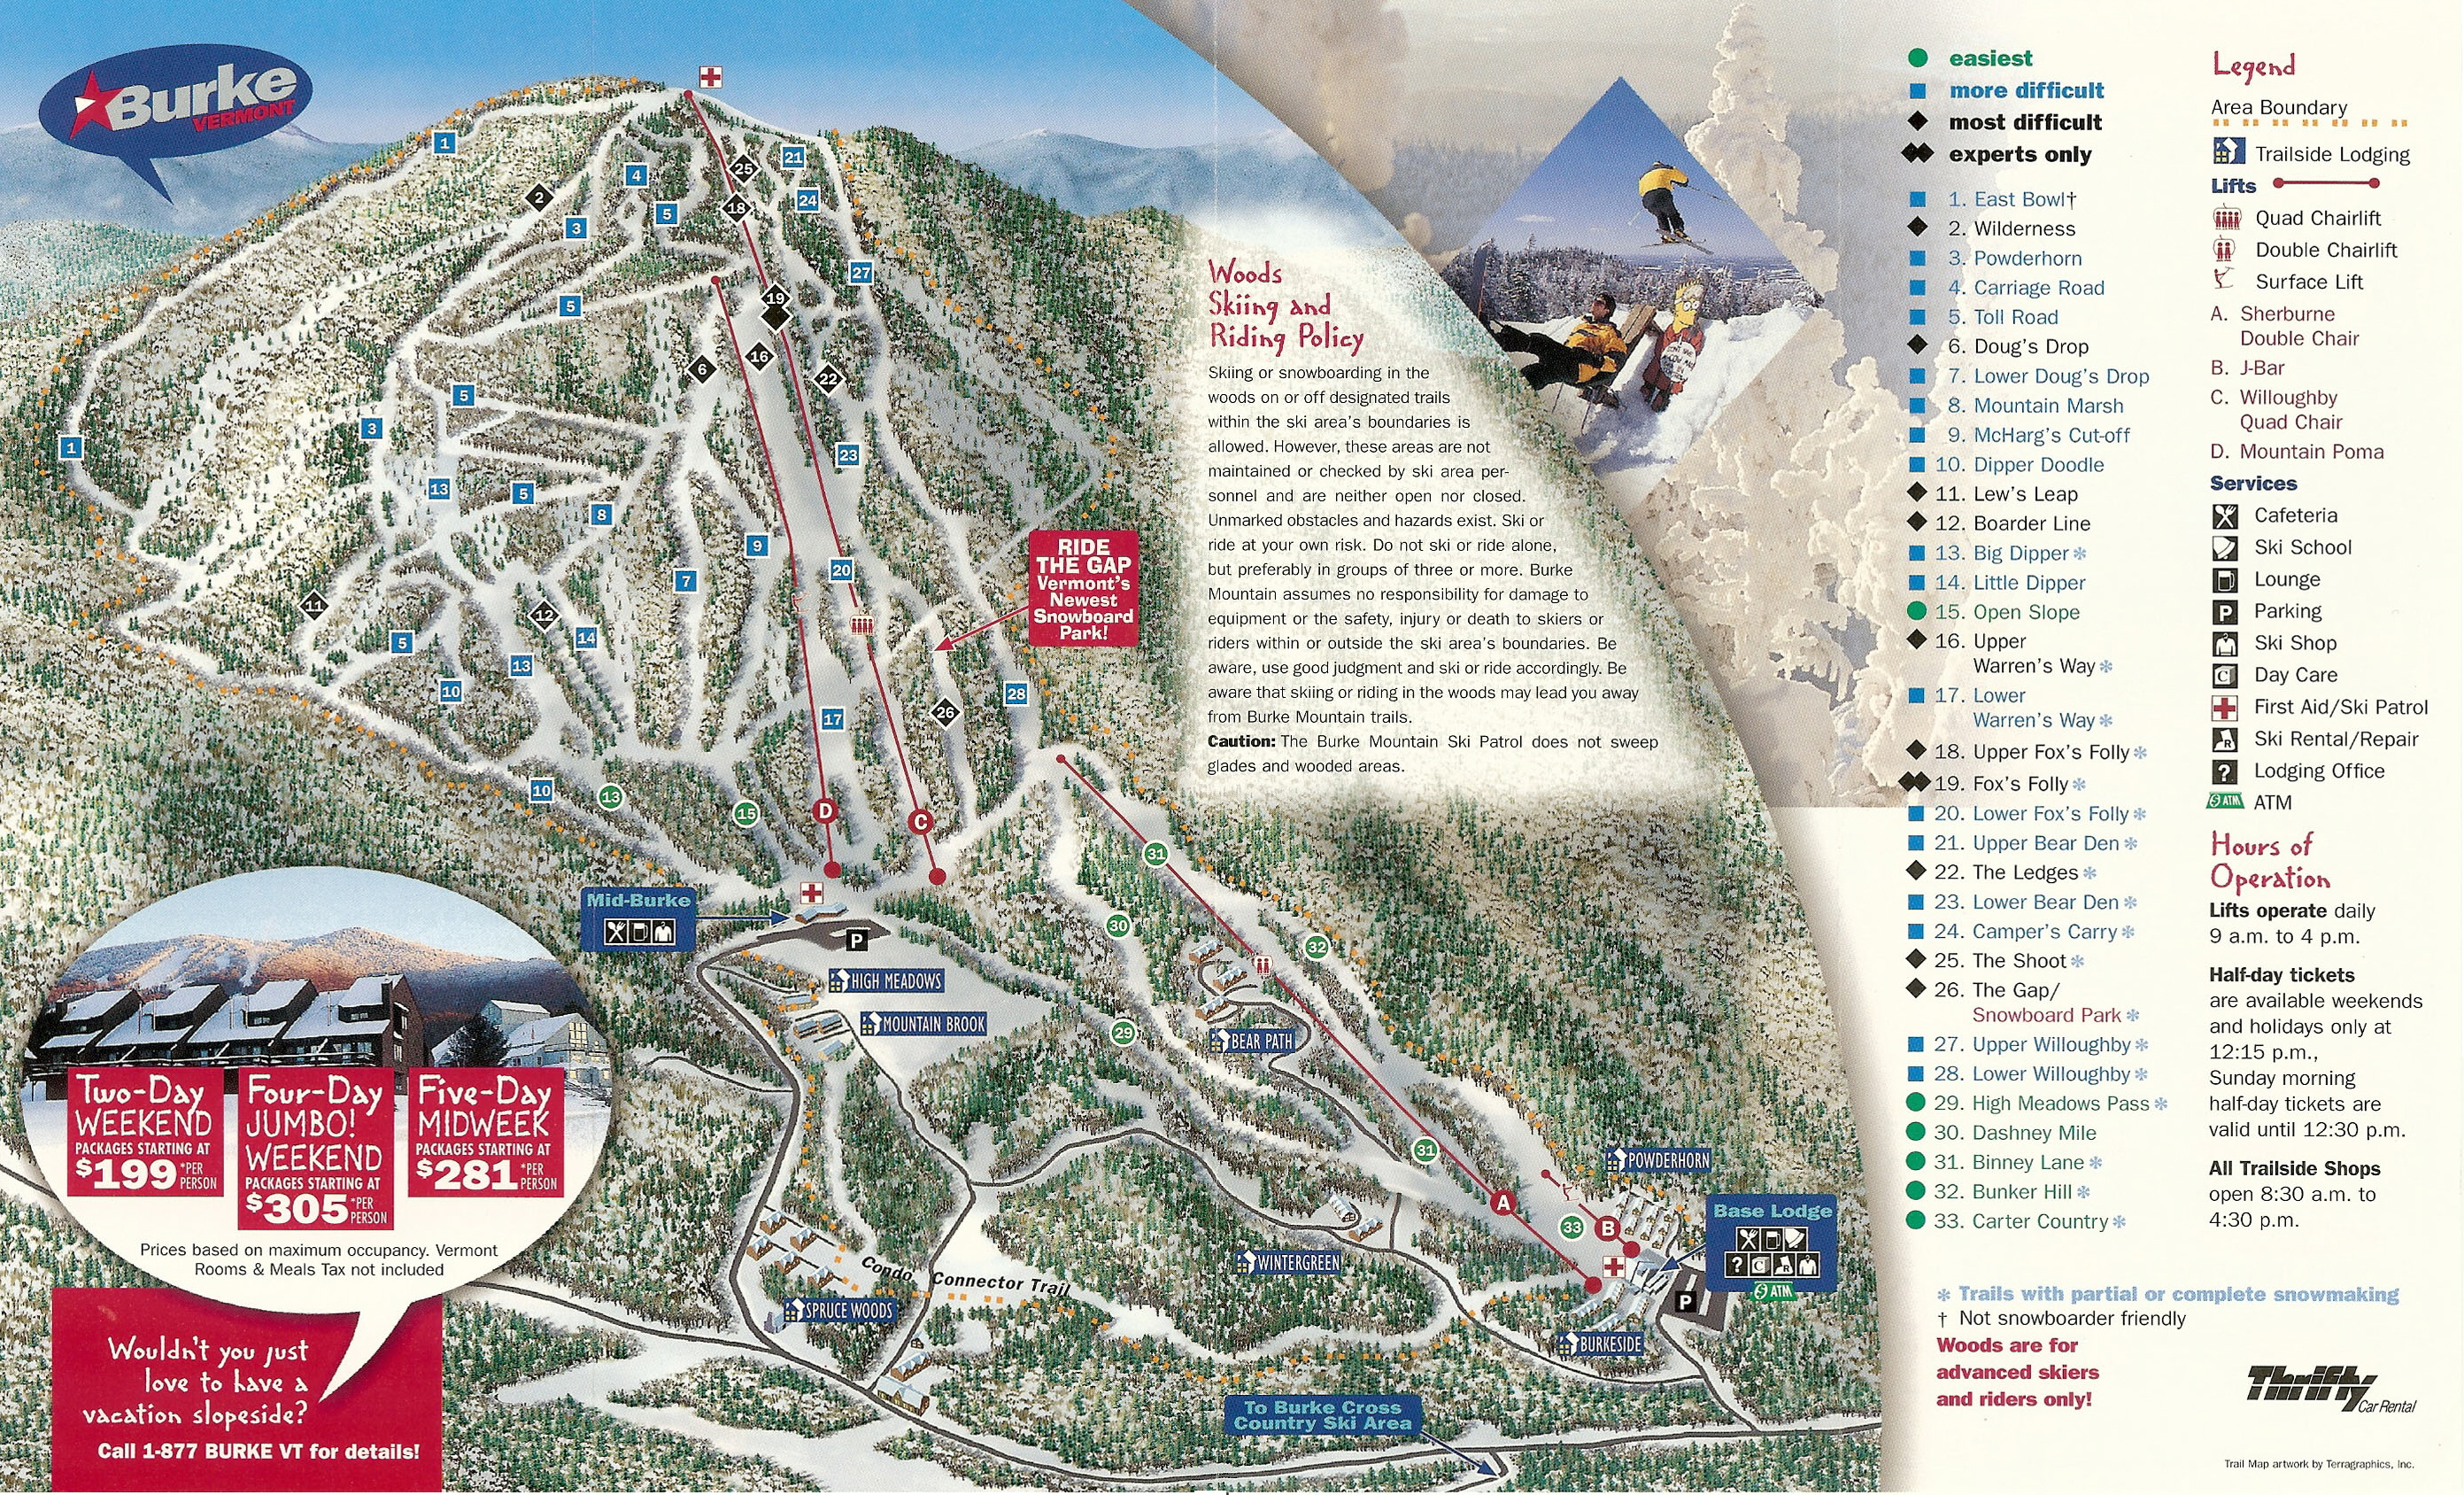 jay peak today burke mountain trail map. owners of jay peak  burke ski resorts in vermont accused of